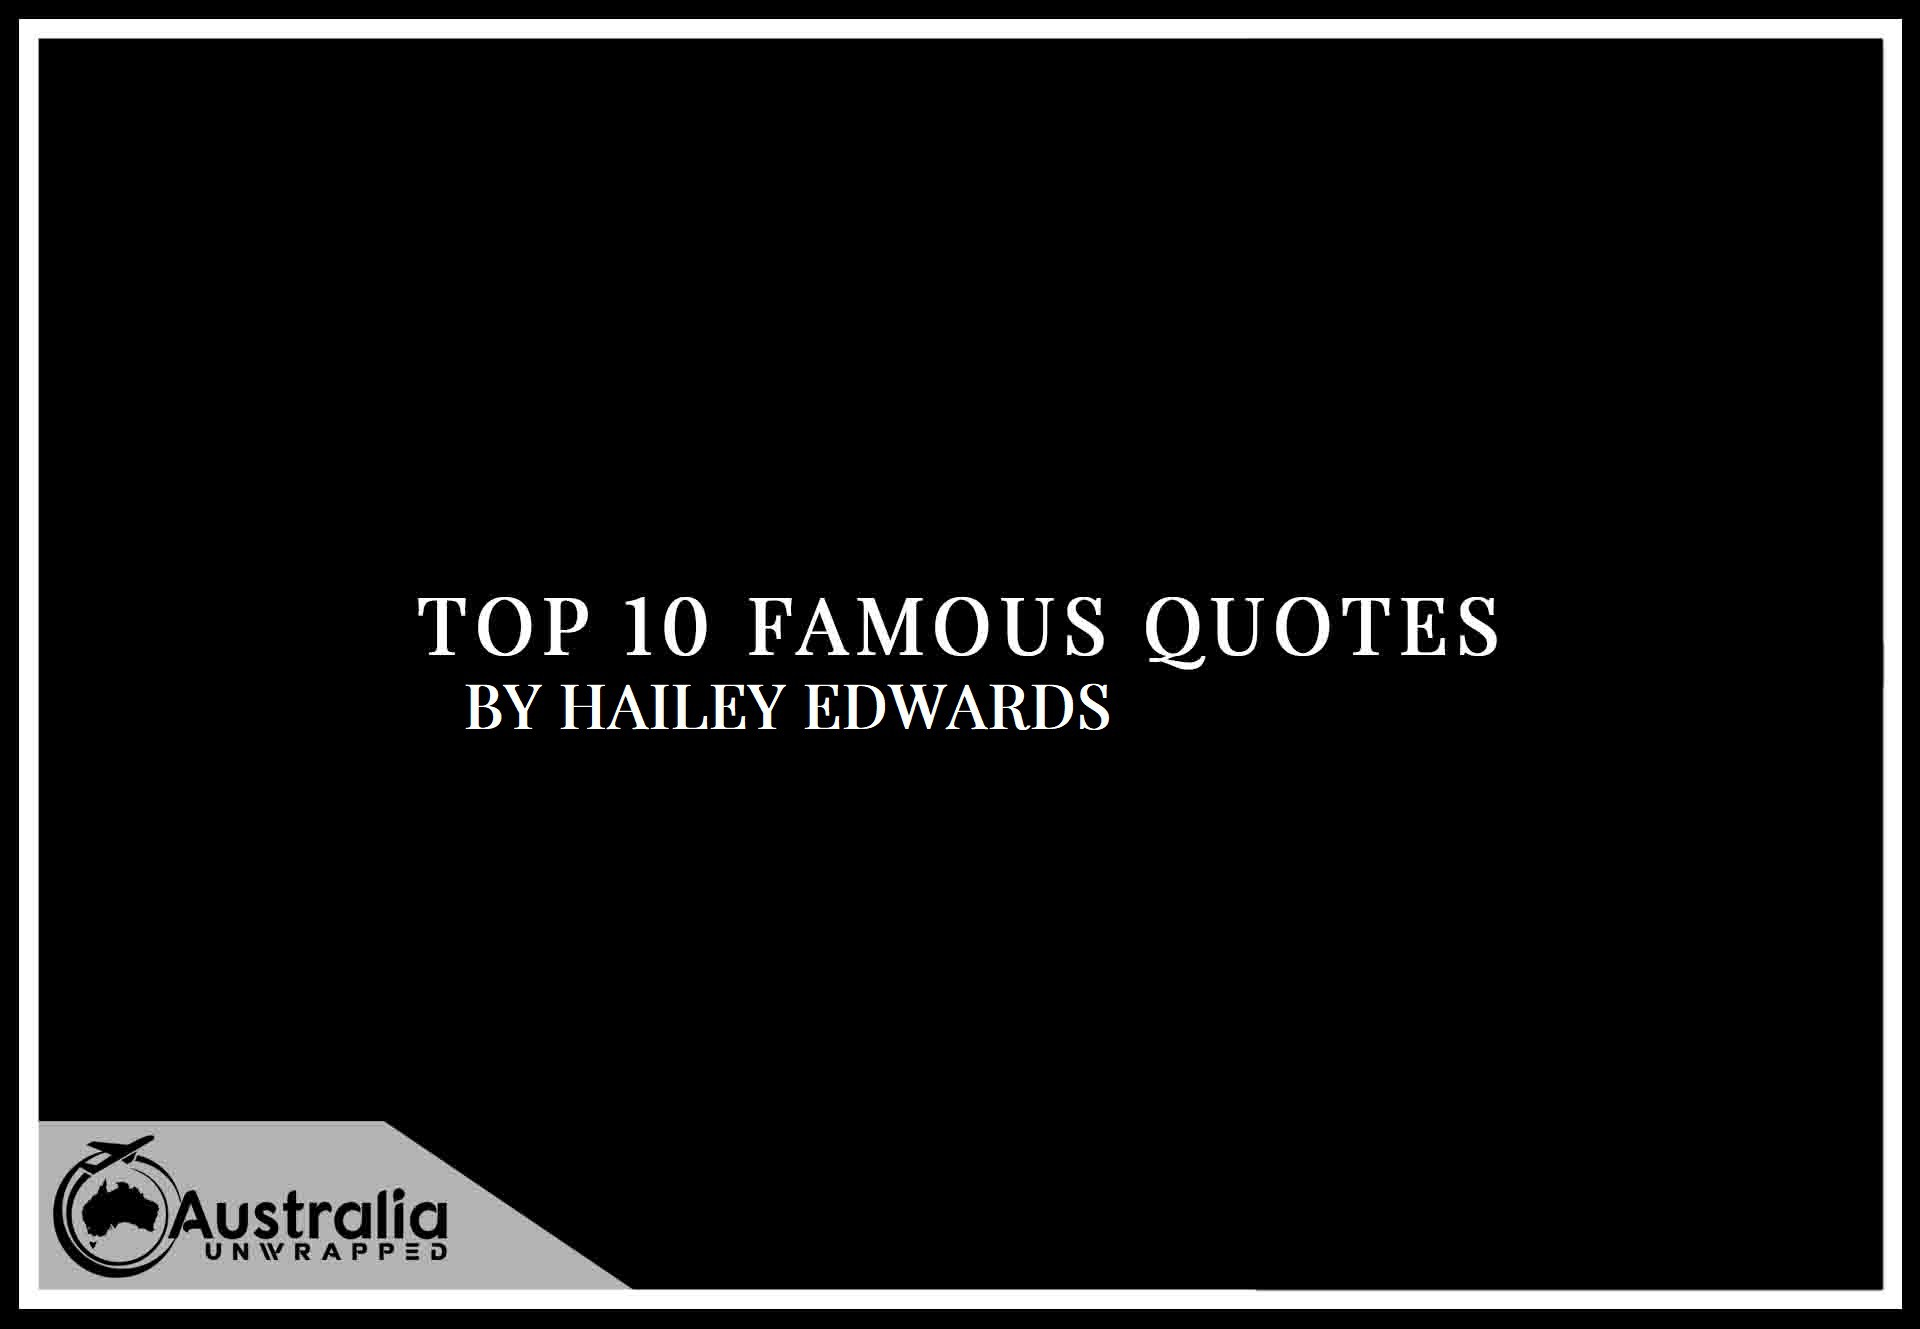 Top 10 Famous Quotes by Author Hailey Edwards